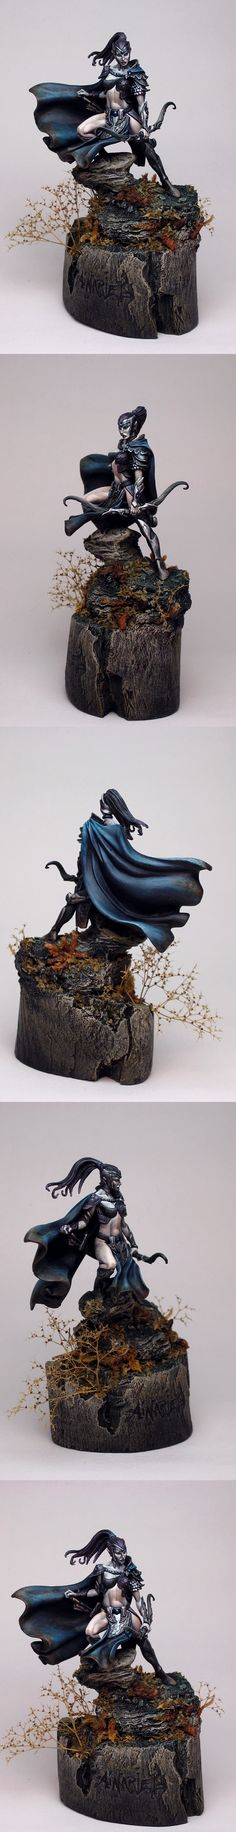 CoolMiniOrNot - Ainariel by rusto- not sure if it's Warhammer but still very cool.